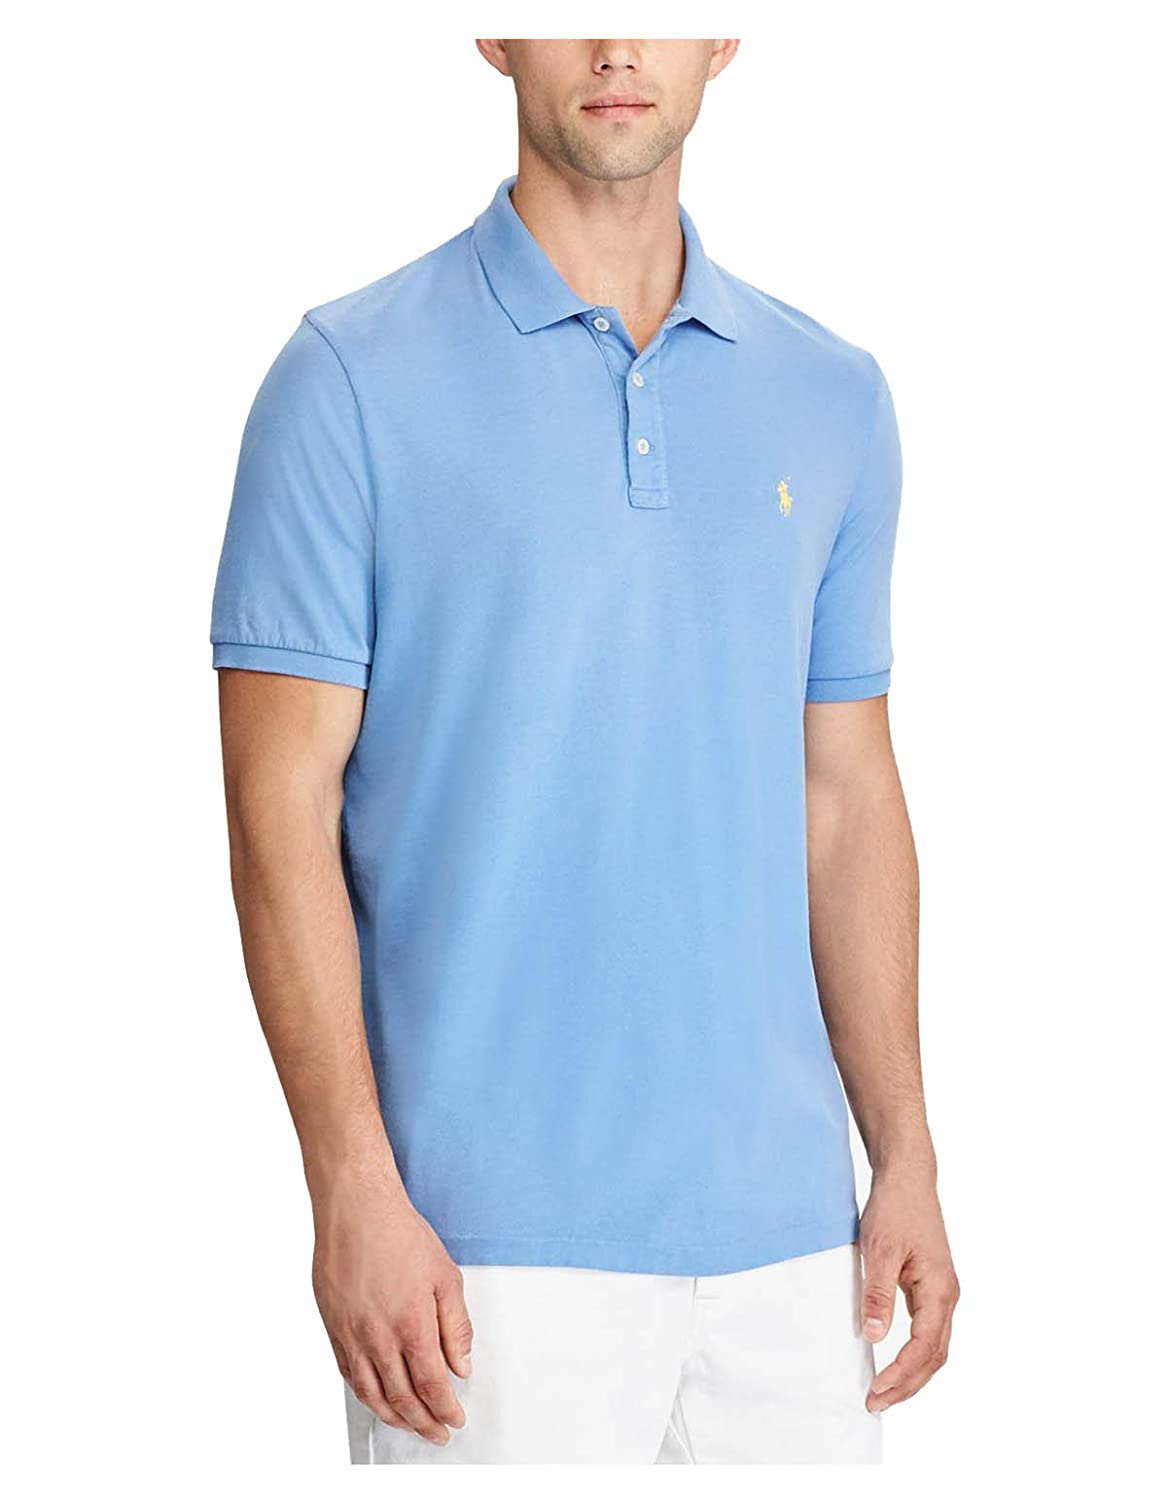 6bc9a7e1 Classic Fit: the roomiest silhouette, Ralph Lauren's Polo shirts also come  in Custom Slim Fit (the trimmest) Size medium has an approx.